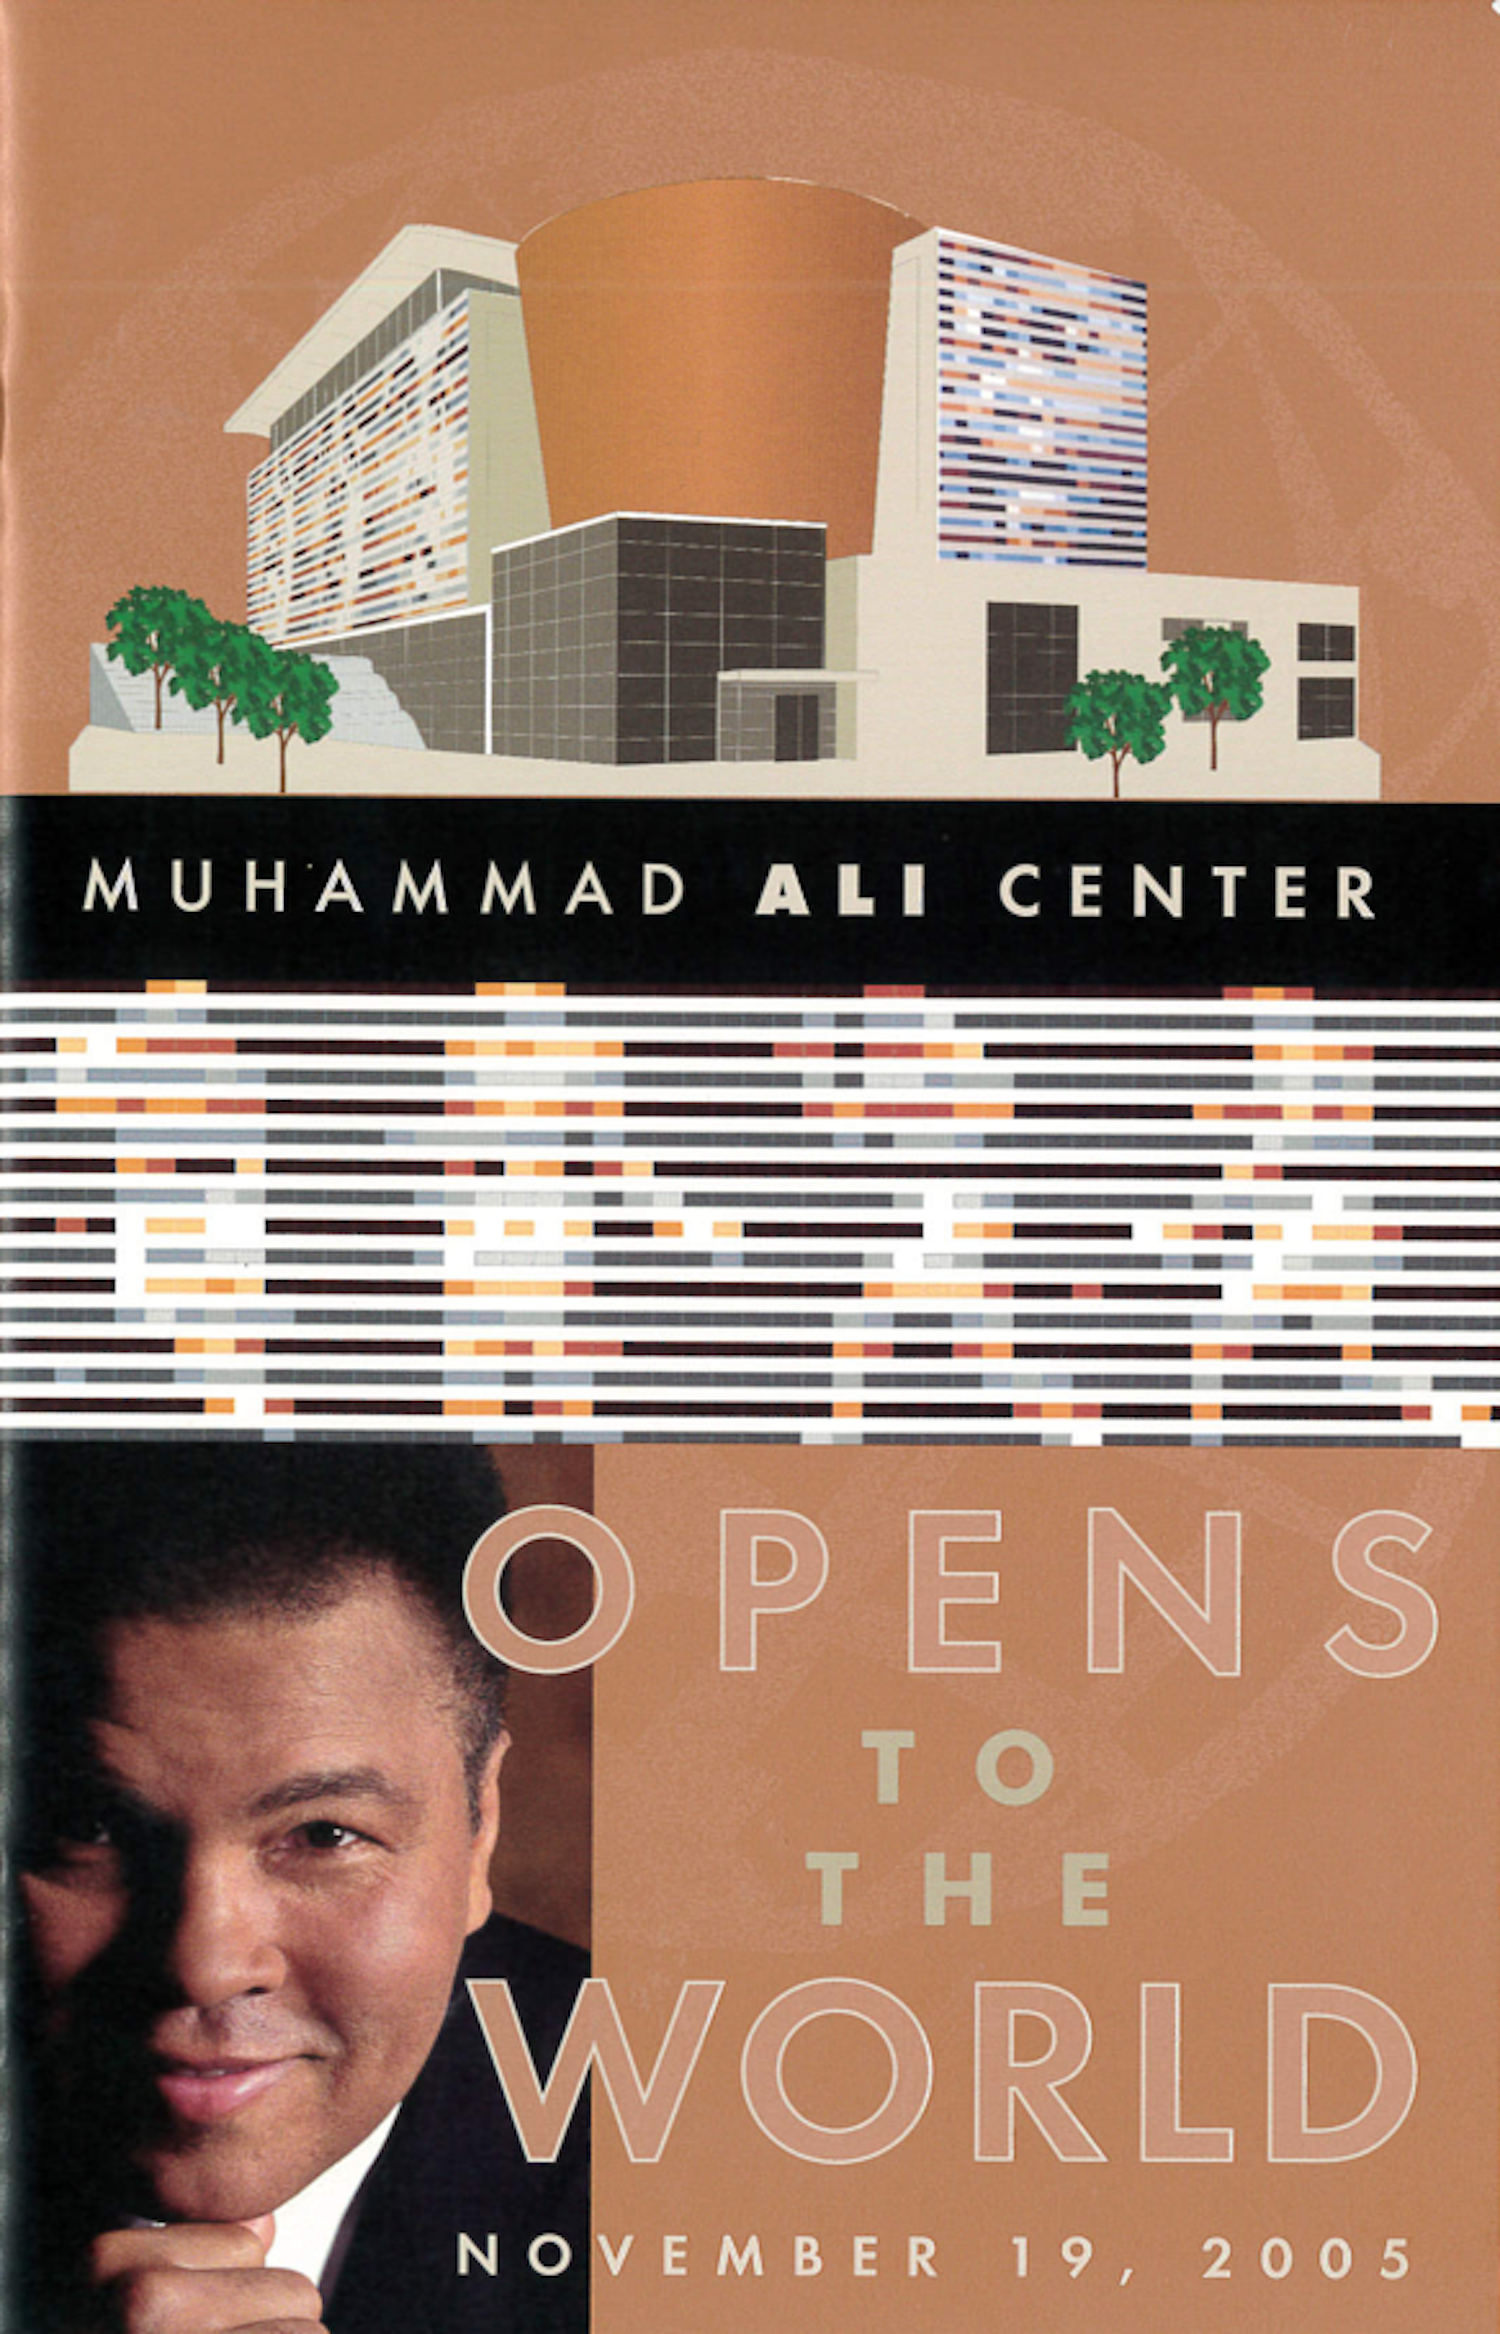 - In 2005, JT was retained by the Muhammad Ali Center to provide media outreach and logistics services to support the grand opening of the Center.